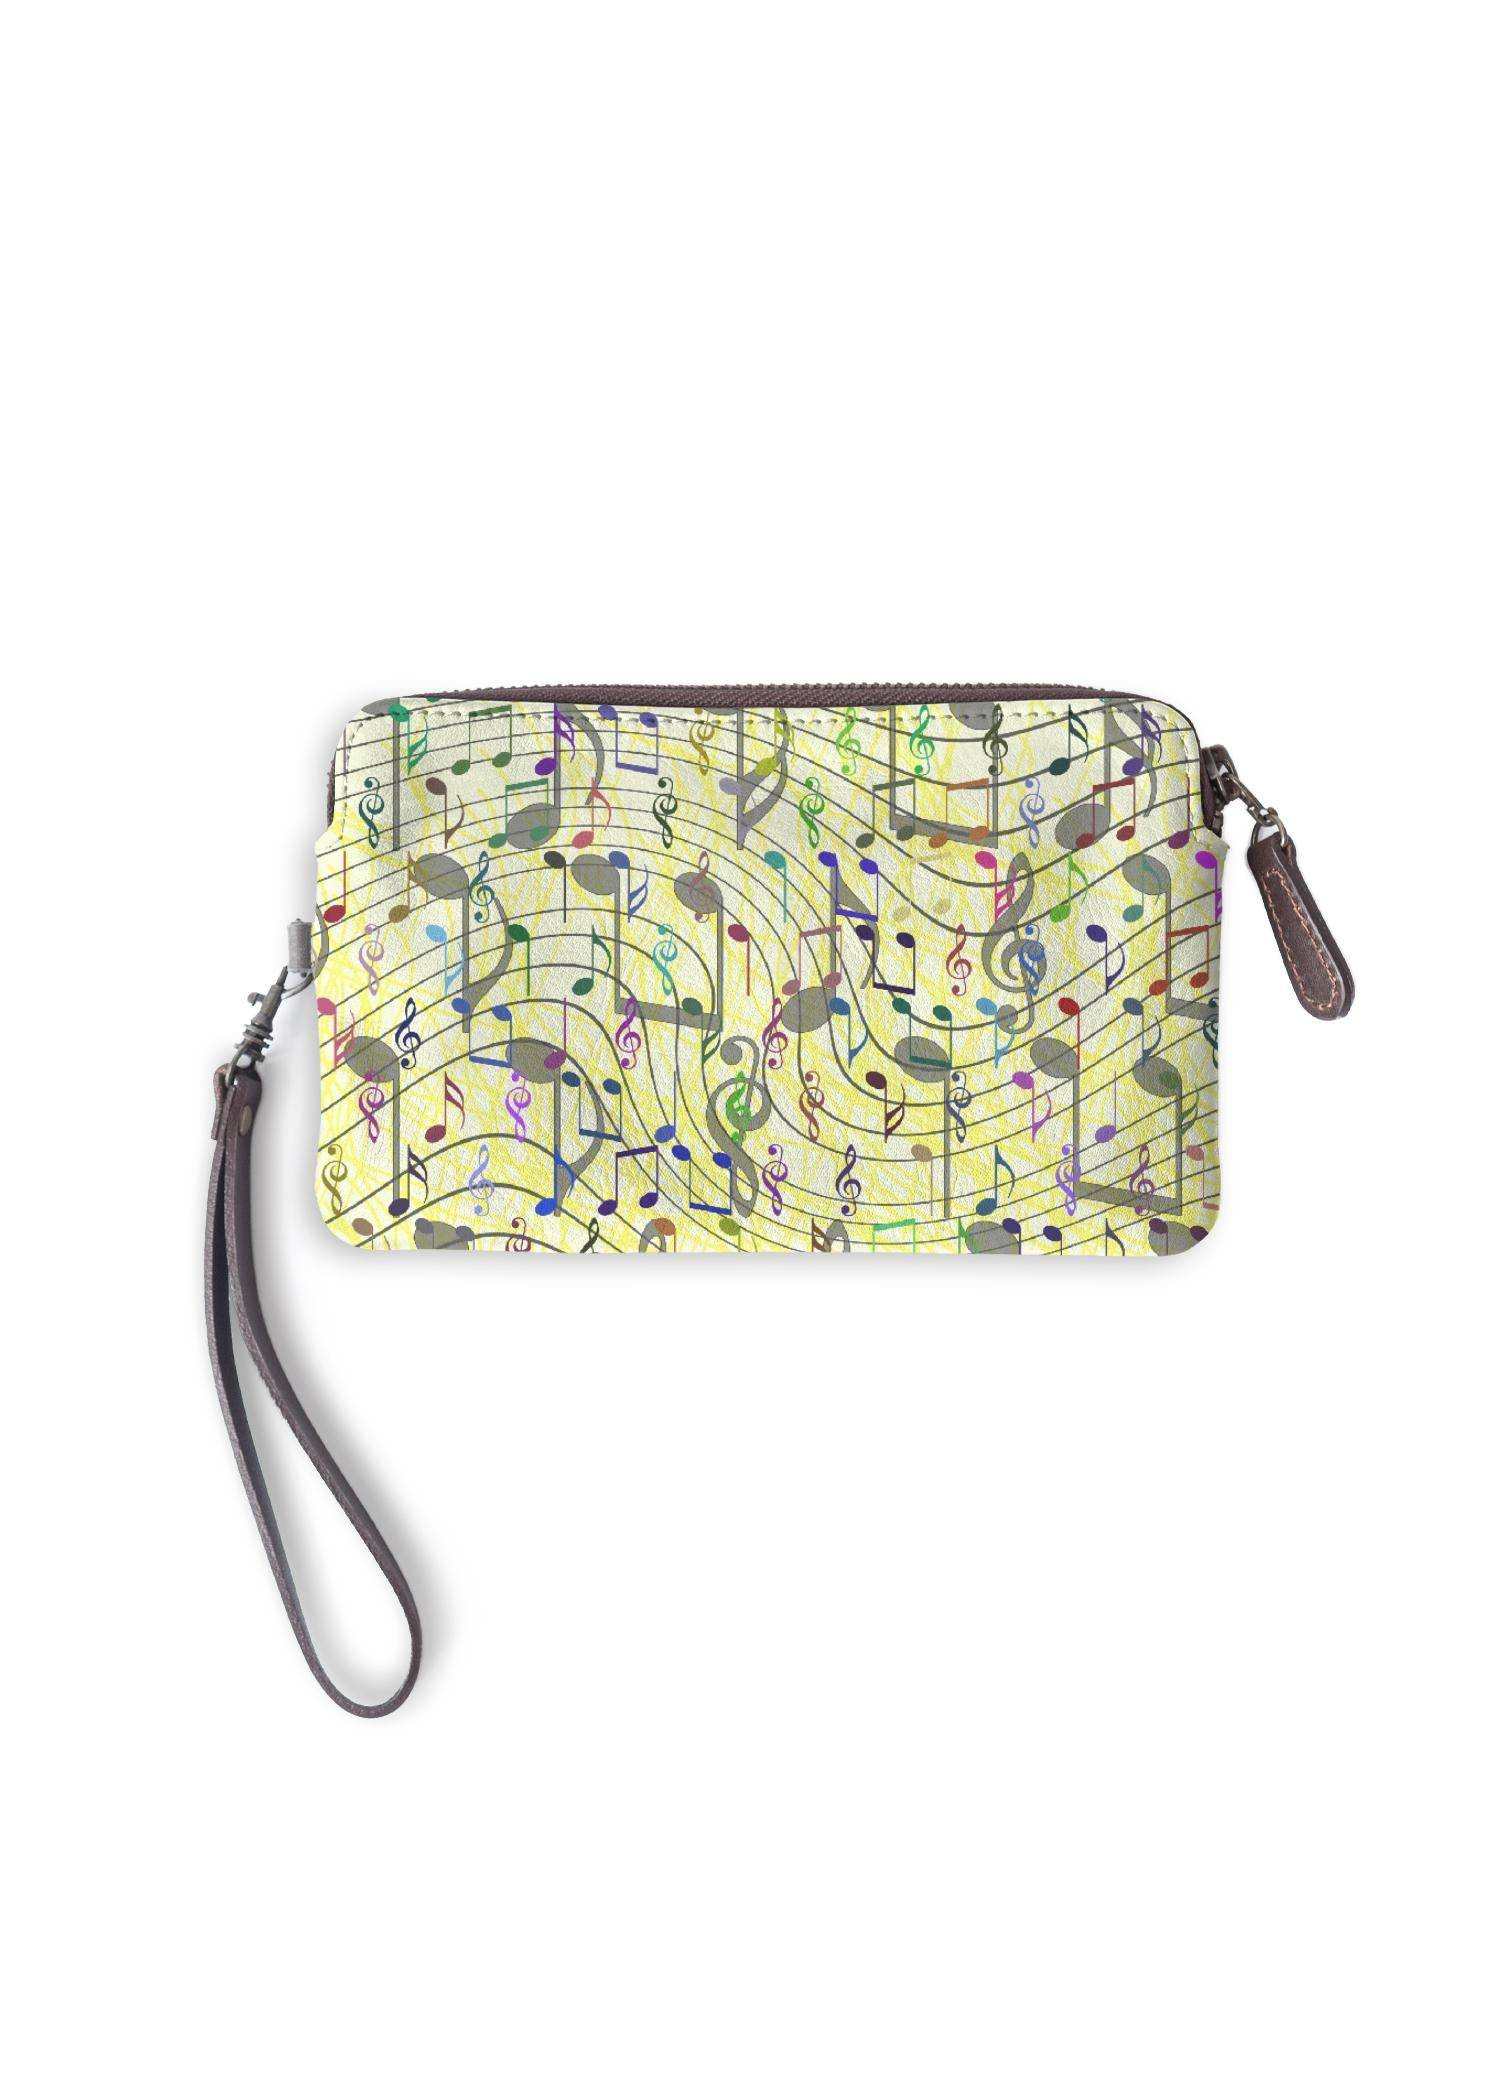 VIDA Leather Statement Clutch - Chaotic Music Notation by VIDA Original Artist  - Size: One Size